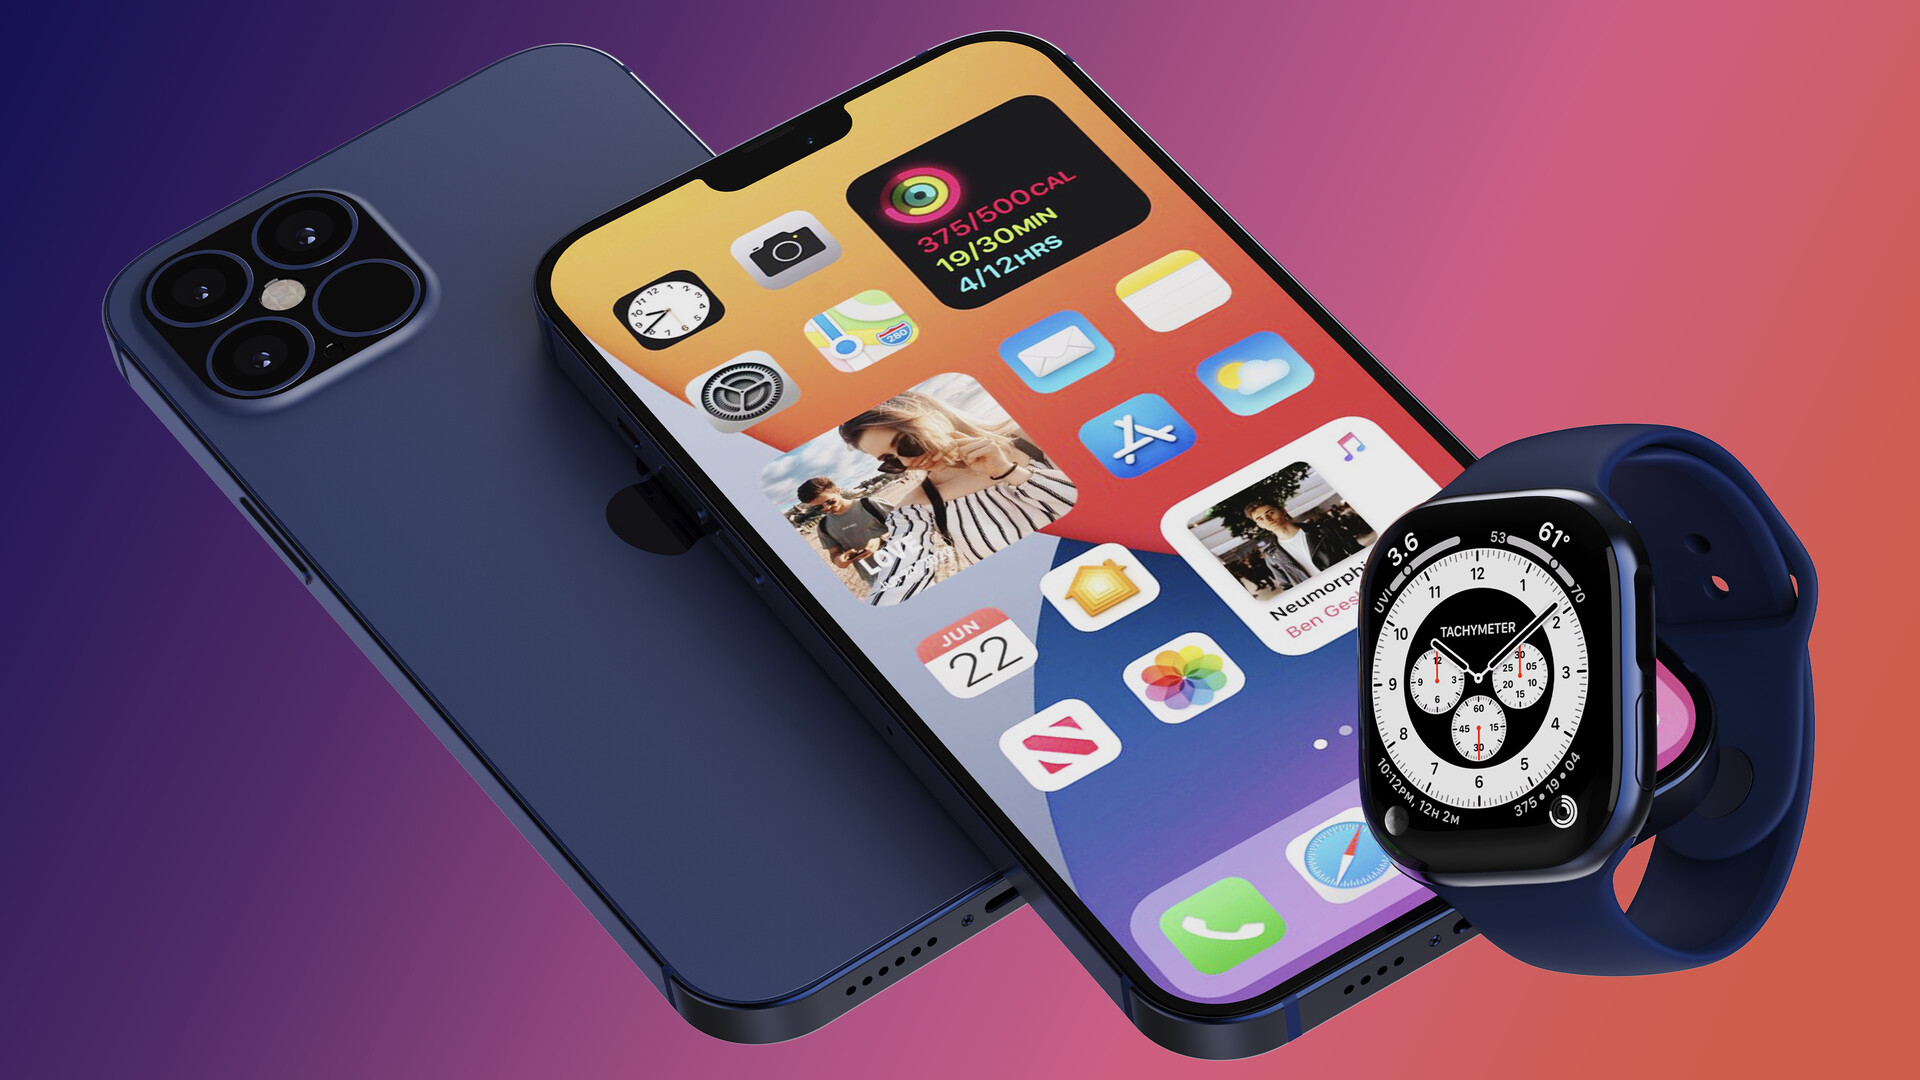 Ios 14 Code Points To Support For 4k 120 And 4k 240 Fps Video In The Iphone 12 Pro And Pro Max Notebookcheck Net News